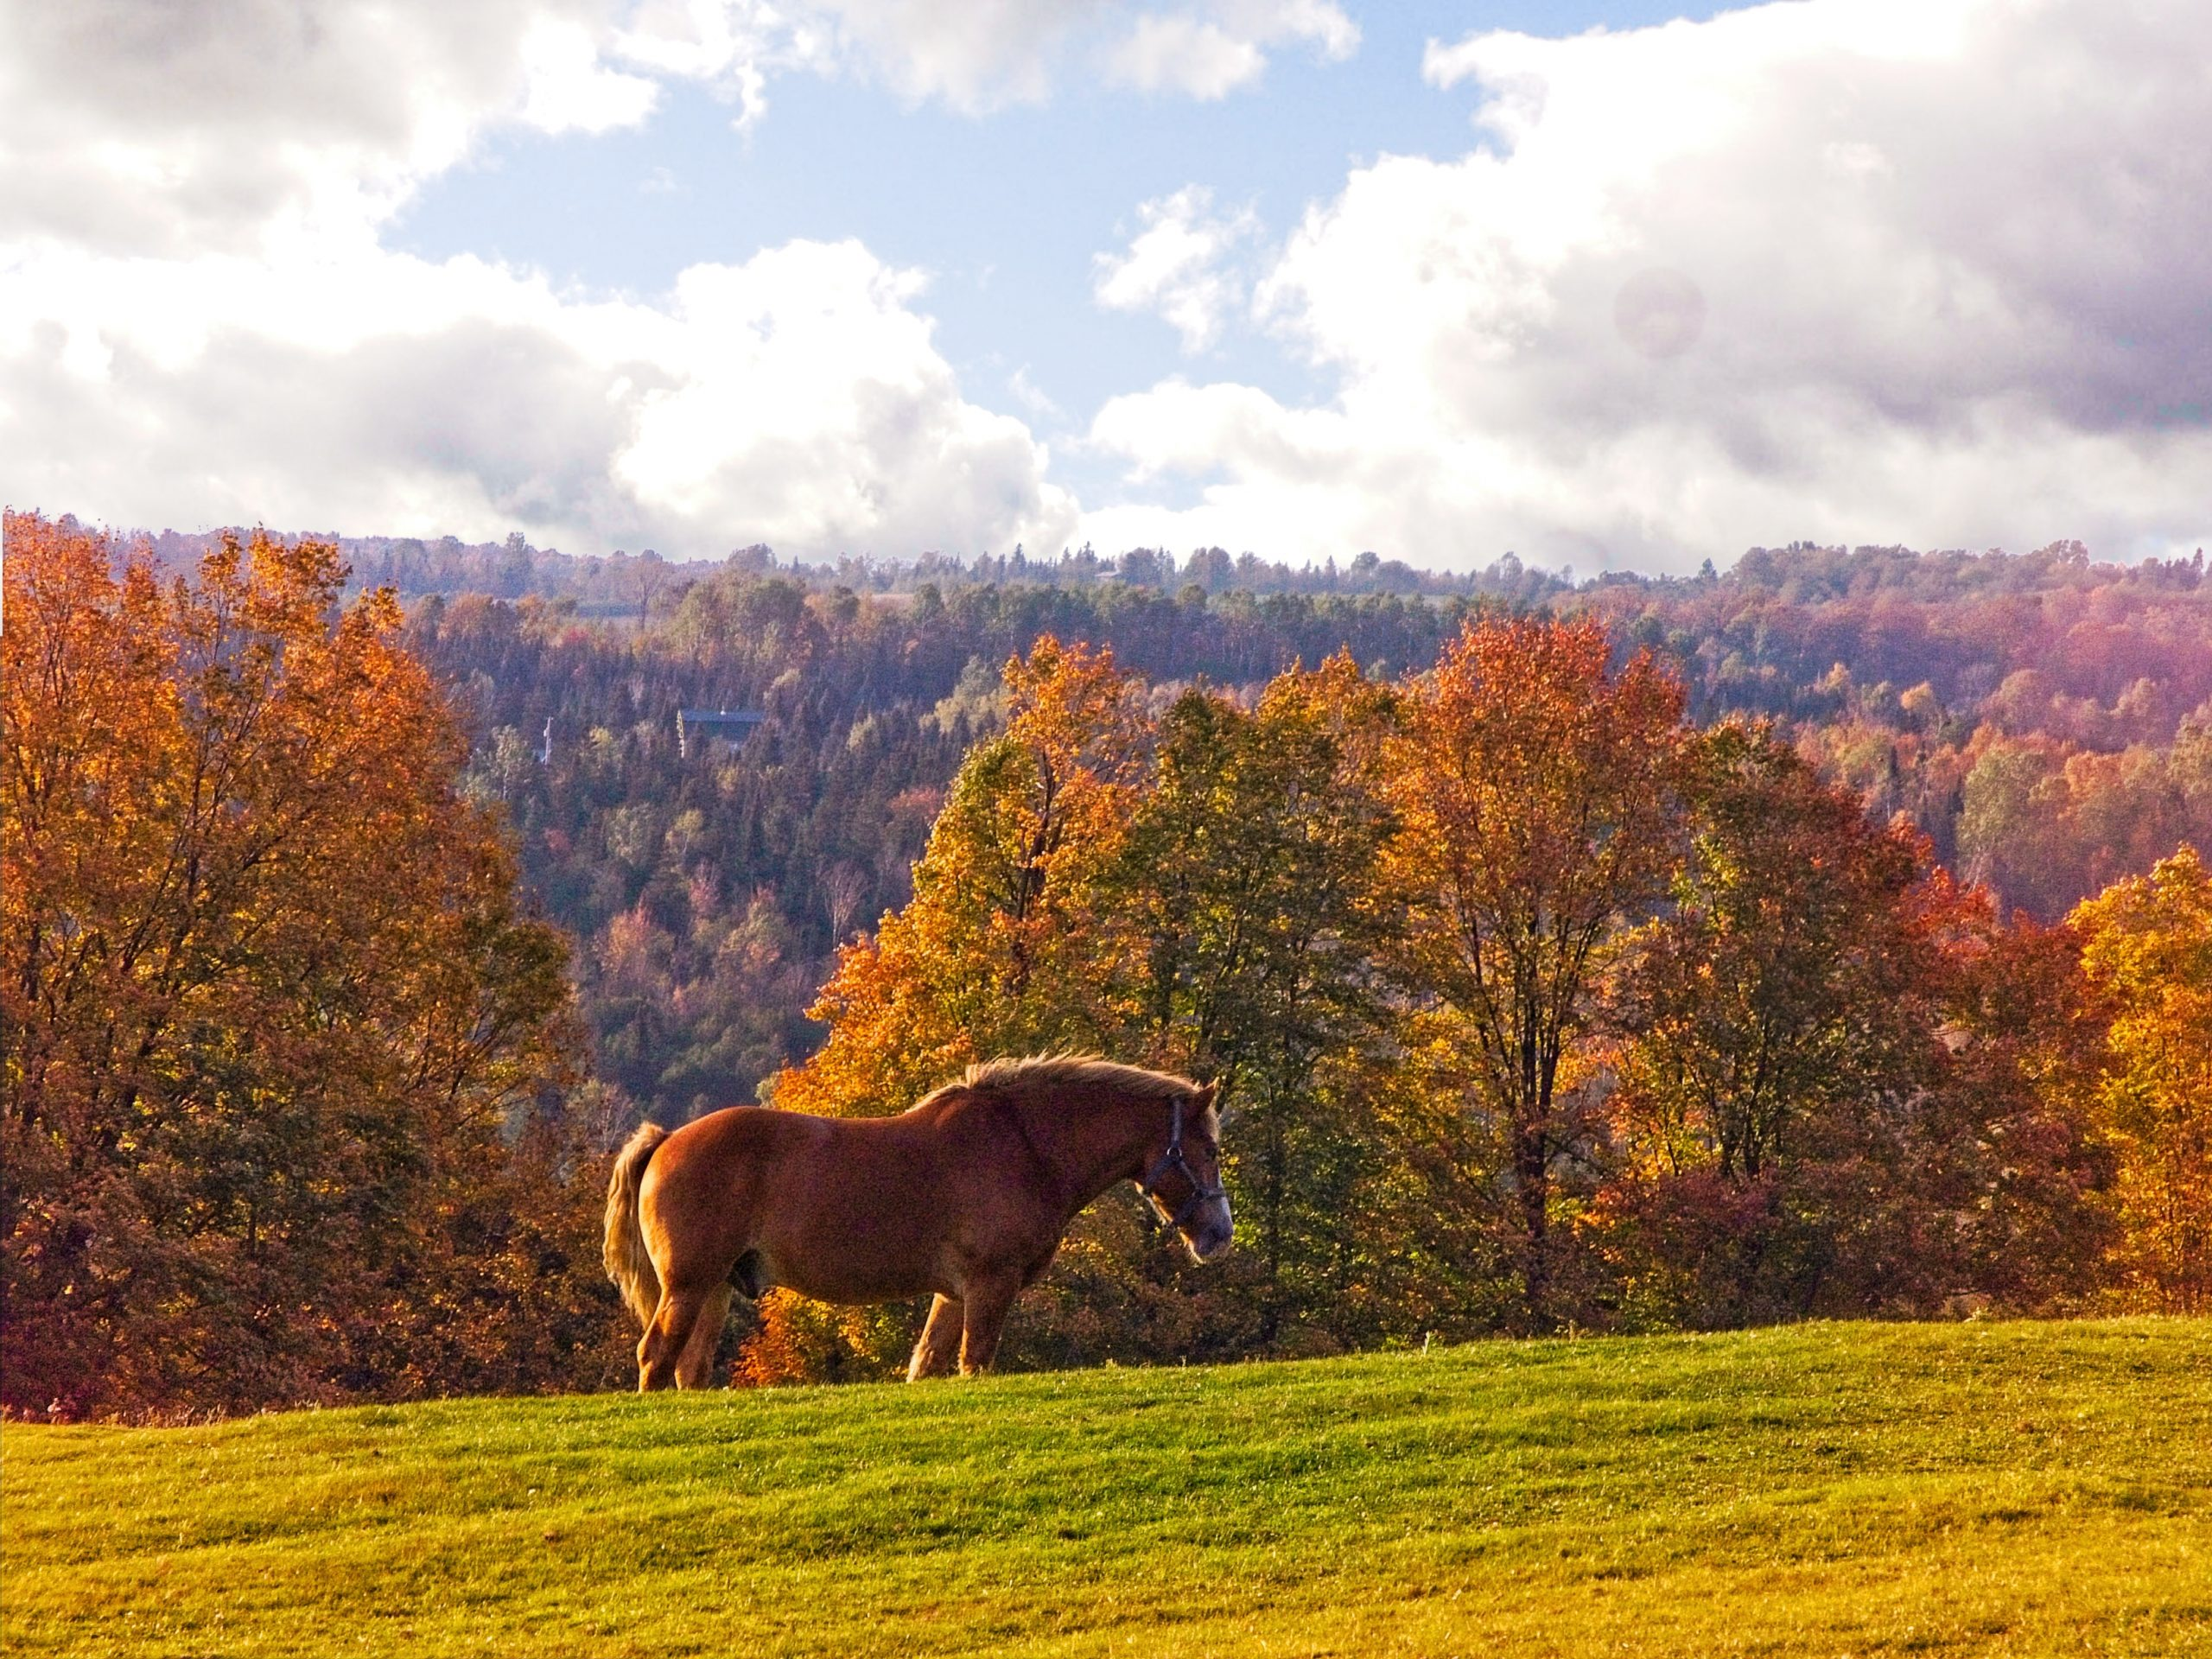 Horse in foliage